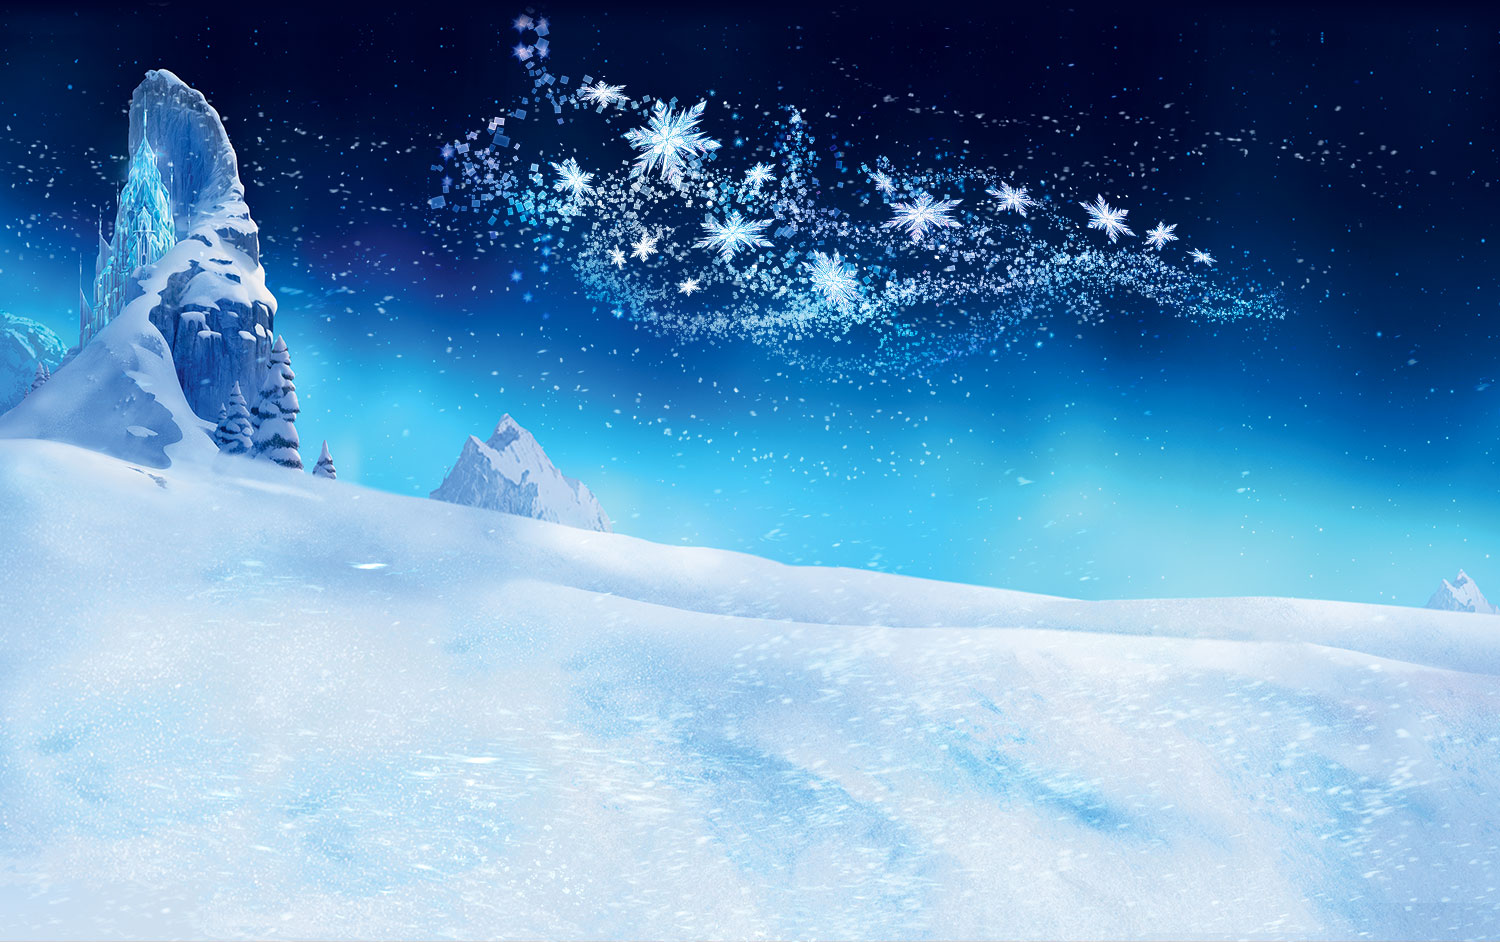 disney frozen wallpaper wallpapersafari